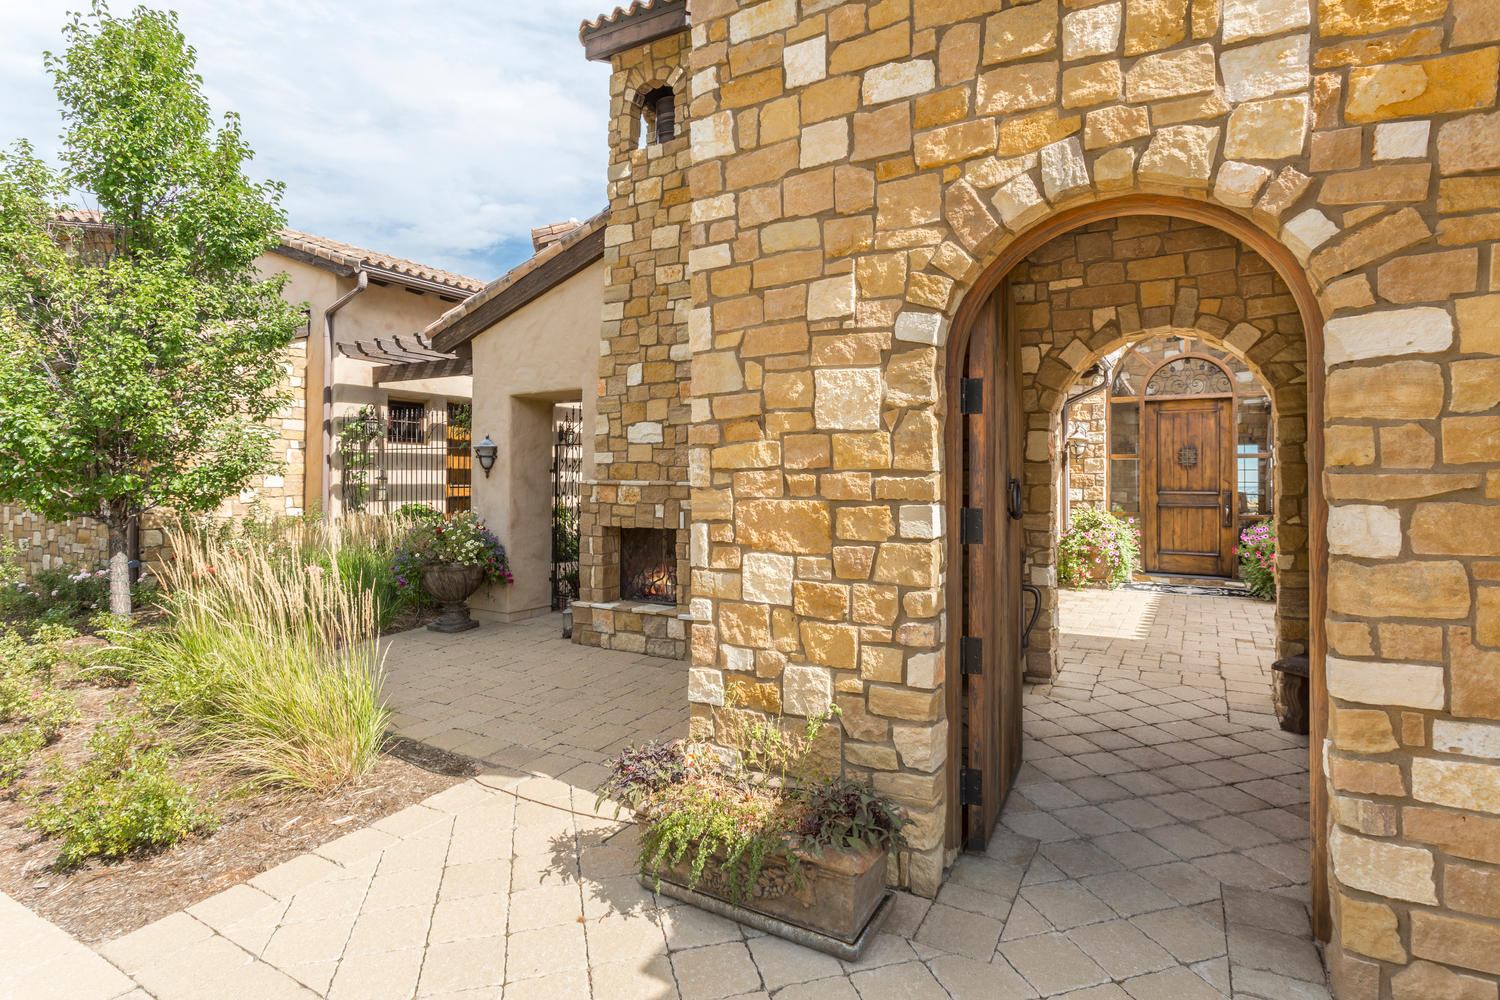 Additional photo for property listing at Rare estate property within the gates of Ravenna 7625 Dante Dr Littleton, Colorado 80125 United States